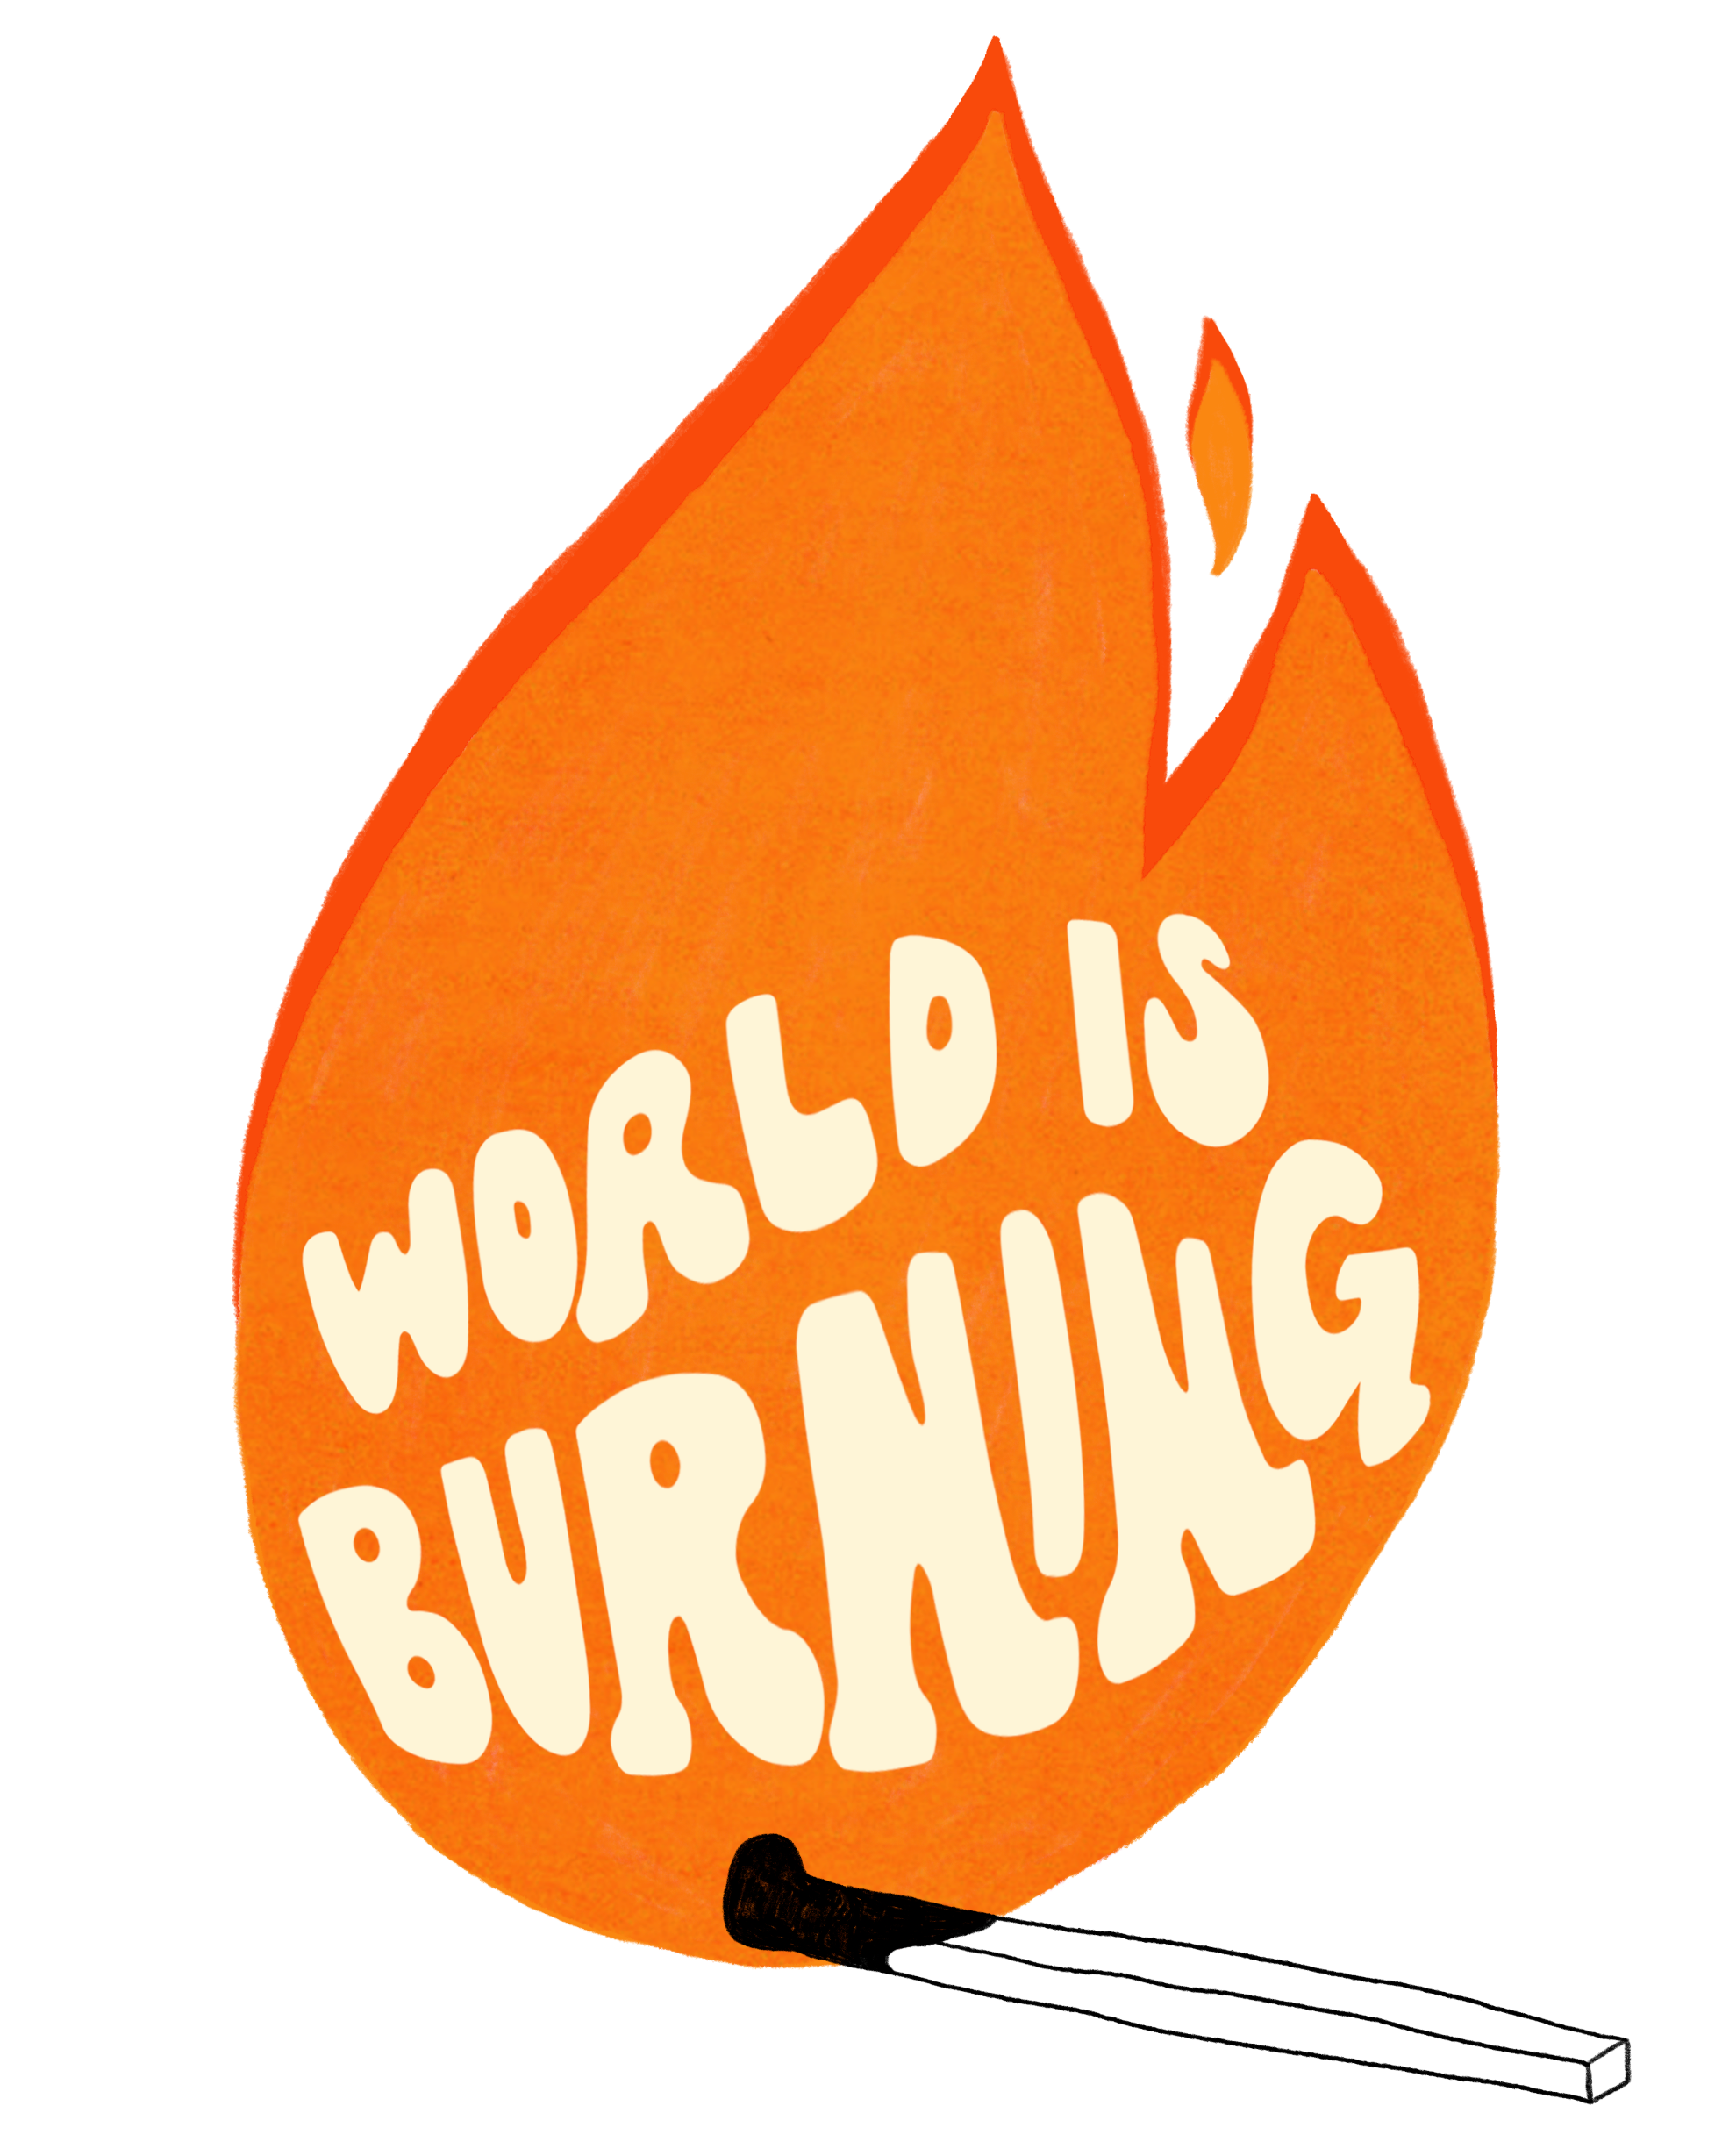 World Is Burning